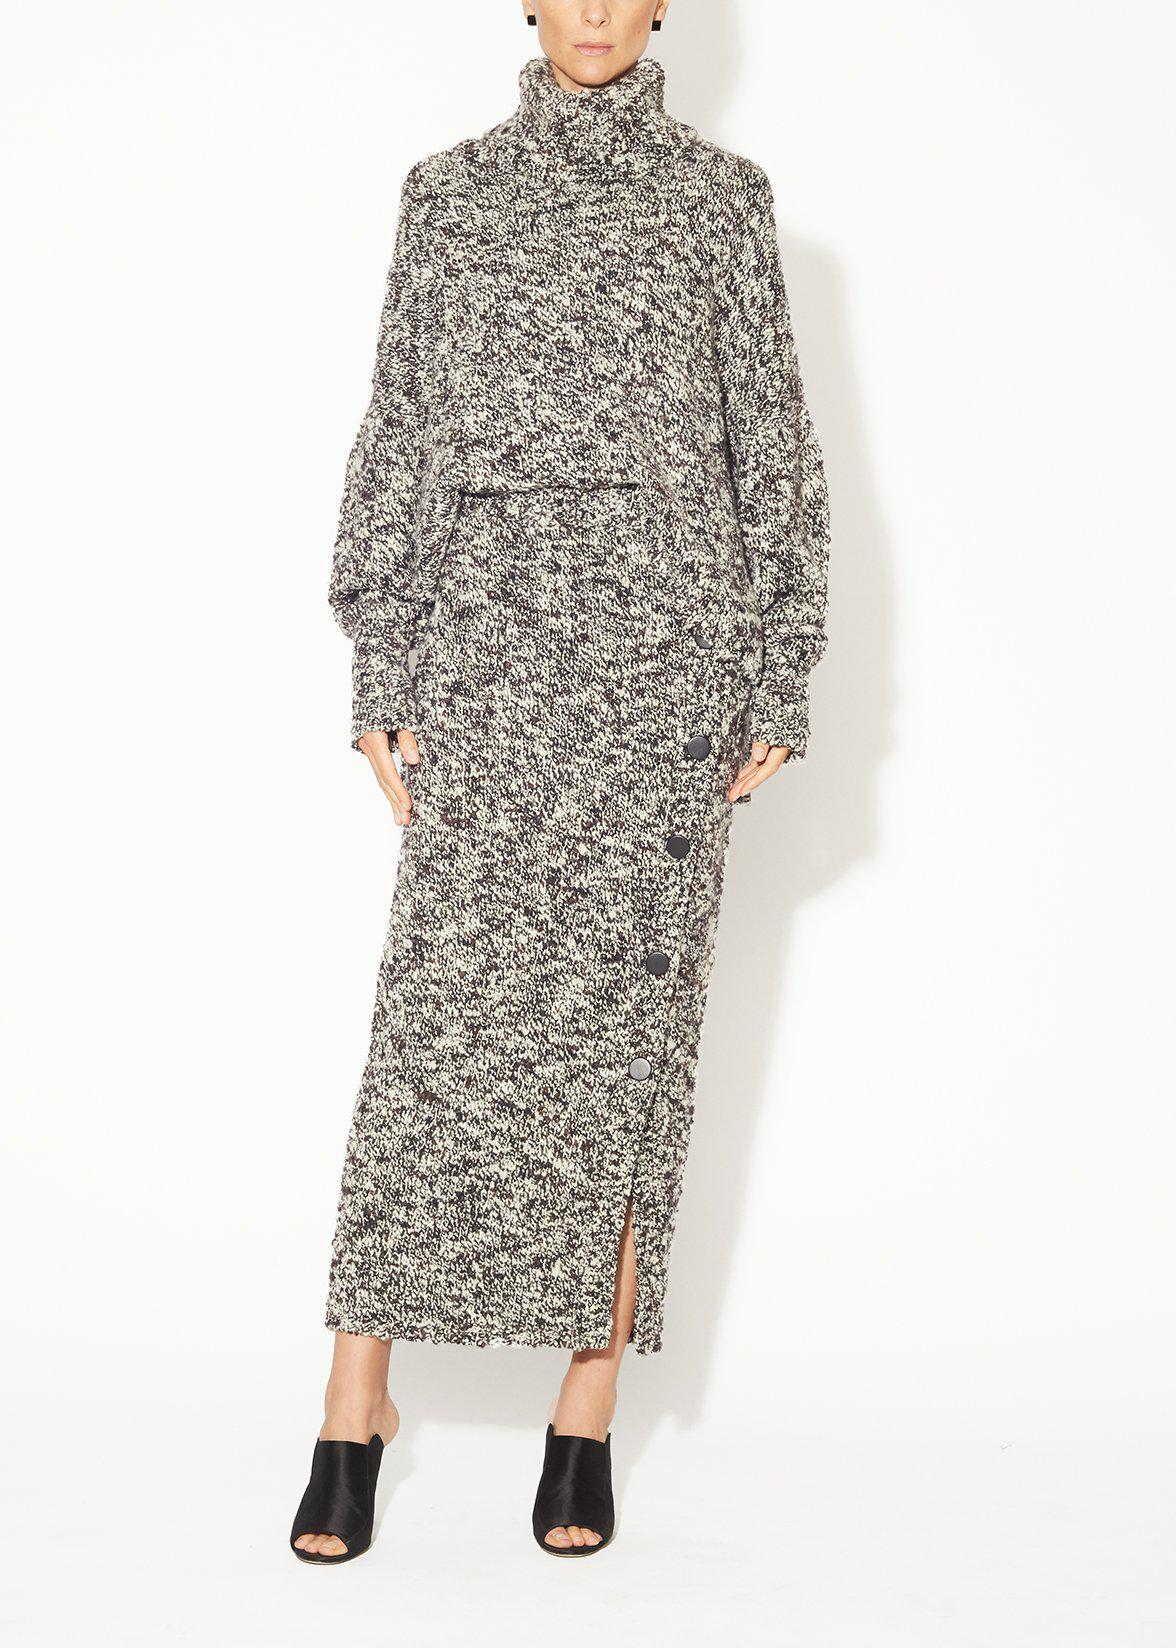 PENCIL SKIRT IN WOOL BOUCLE